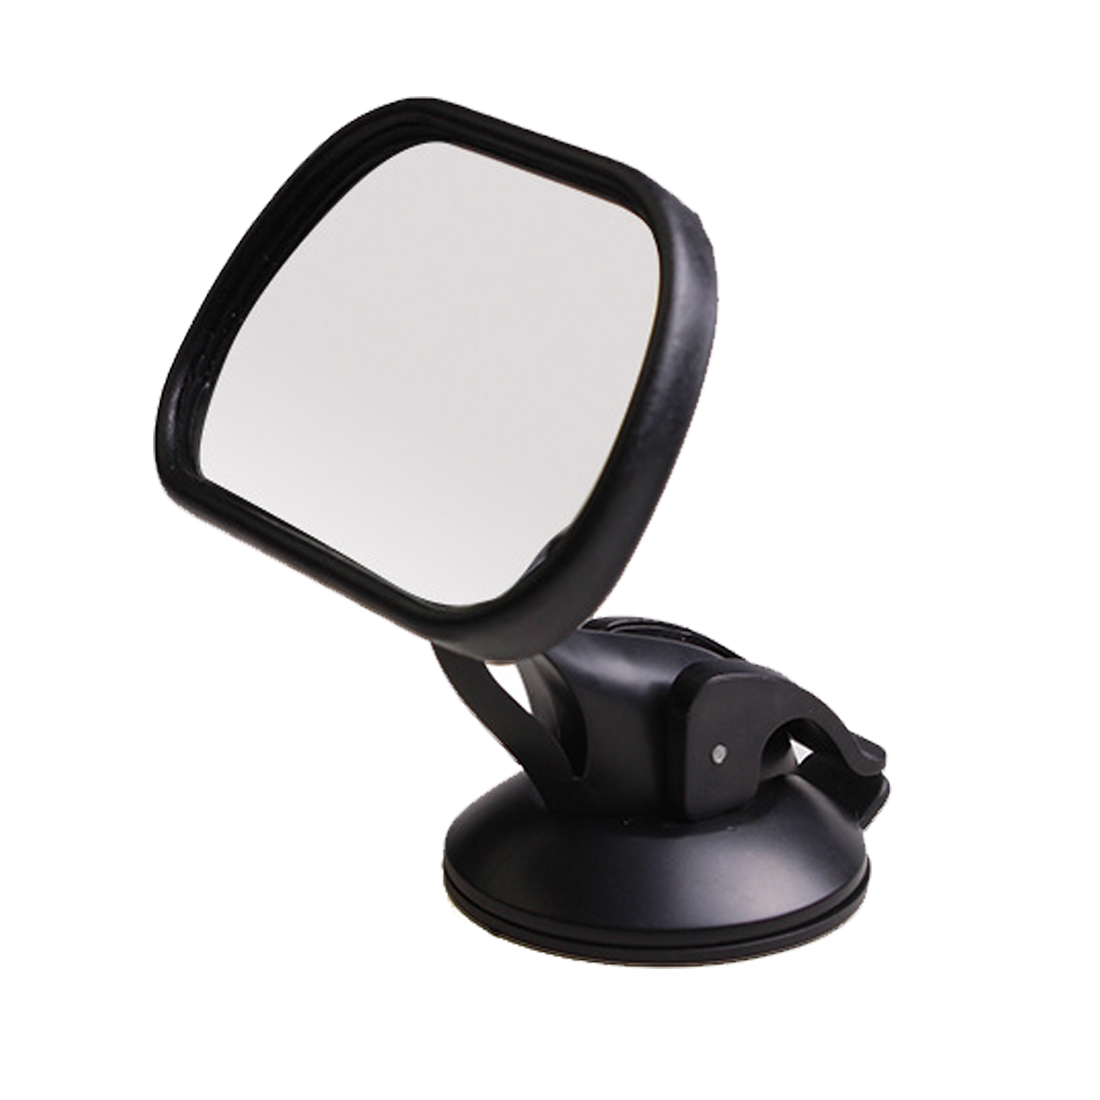 Dewtreetali NEW arrive Universal Car Rear Seat View Mirror Baby Child Safety With Clip and Sucker New Dropping Shipping